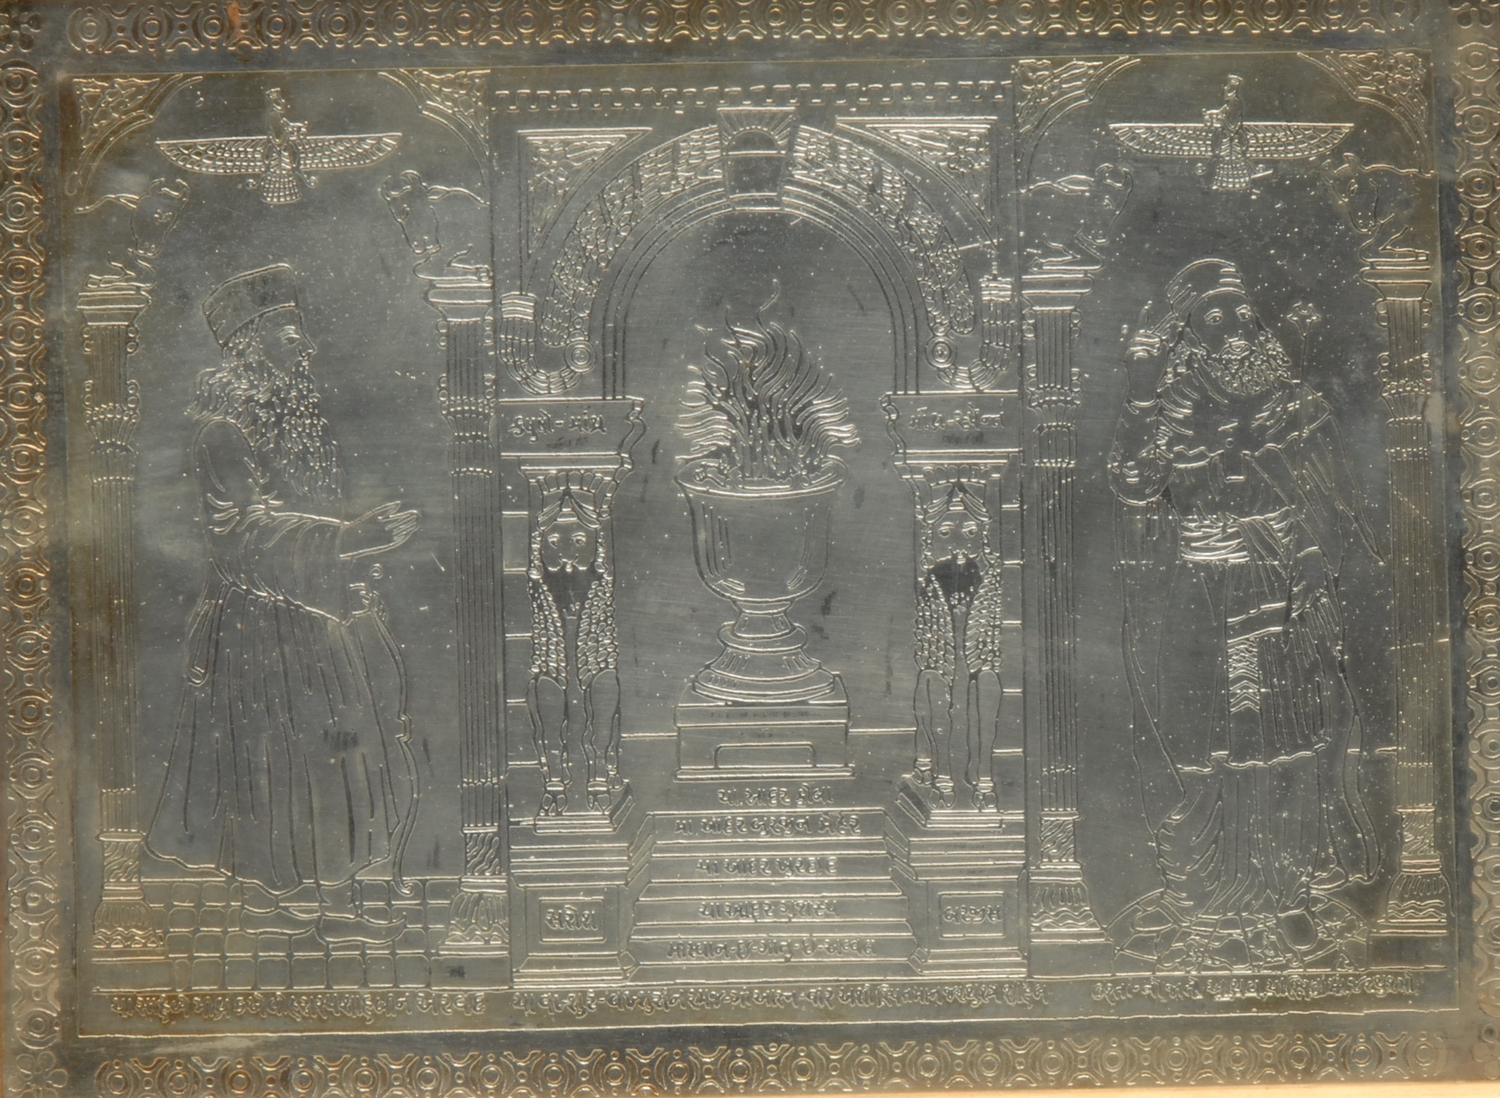 Zoroastrianism - a Persian silver coloured metal rectangular plaque, depicting priests beside an